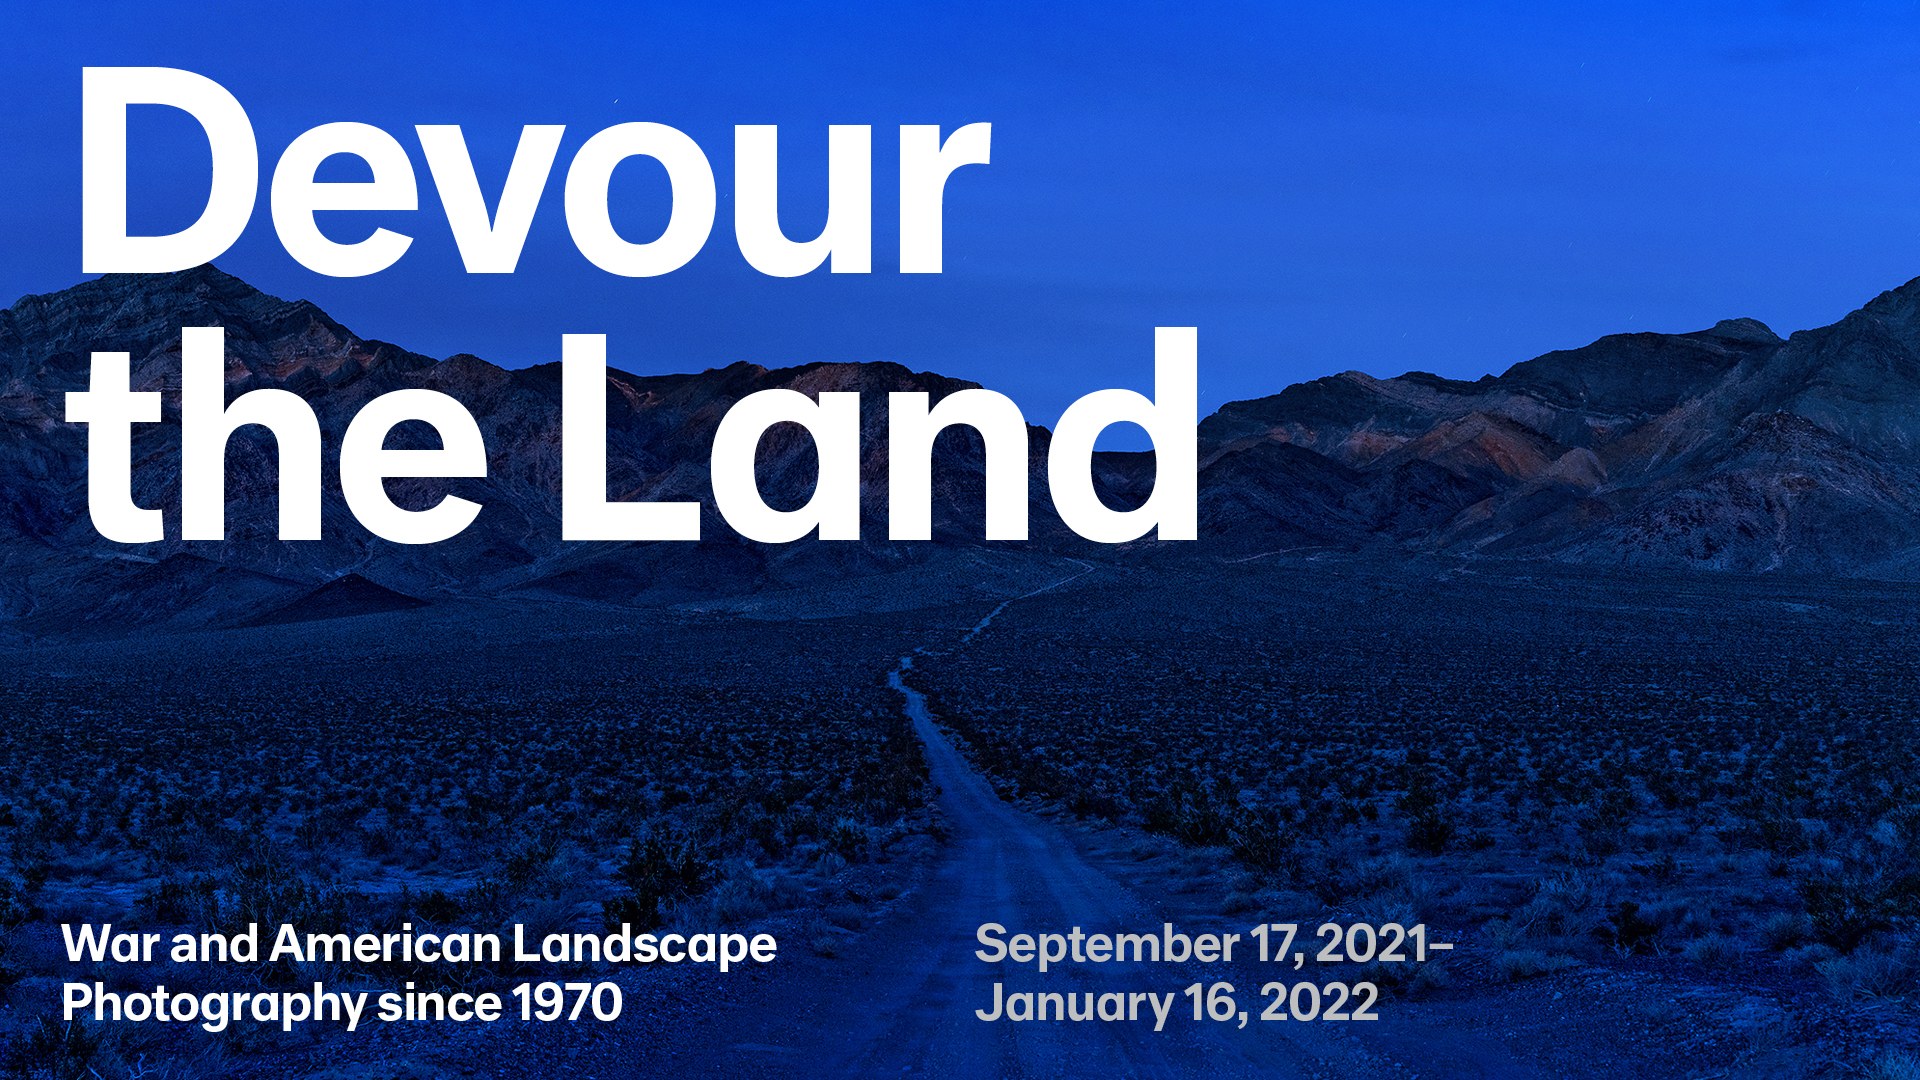 """A blue-saturated photograph of a desert landscape at night with a winding road in the foreground and mountains in the background. A blue-saturated photograph of a desert landscape at night with a winding road in the foreground and mountains in the background. In large white letters at the top are the words """"Devour the Land"""" and text at the bottom reads """"War and American Landscape Photography since 1970"""" and """"September 17, 2021–¬January 16, 2022."""""""